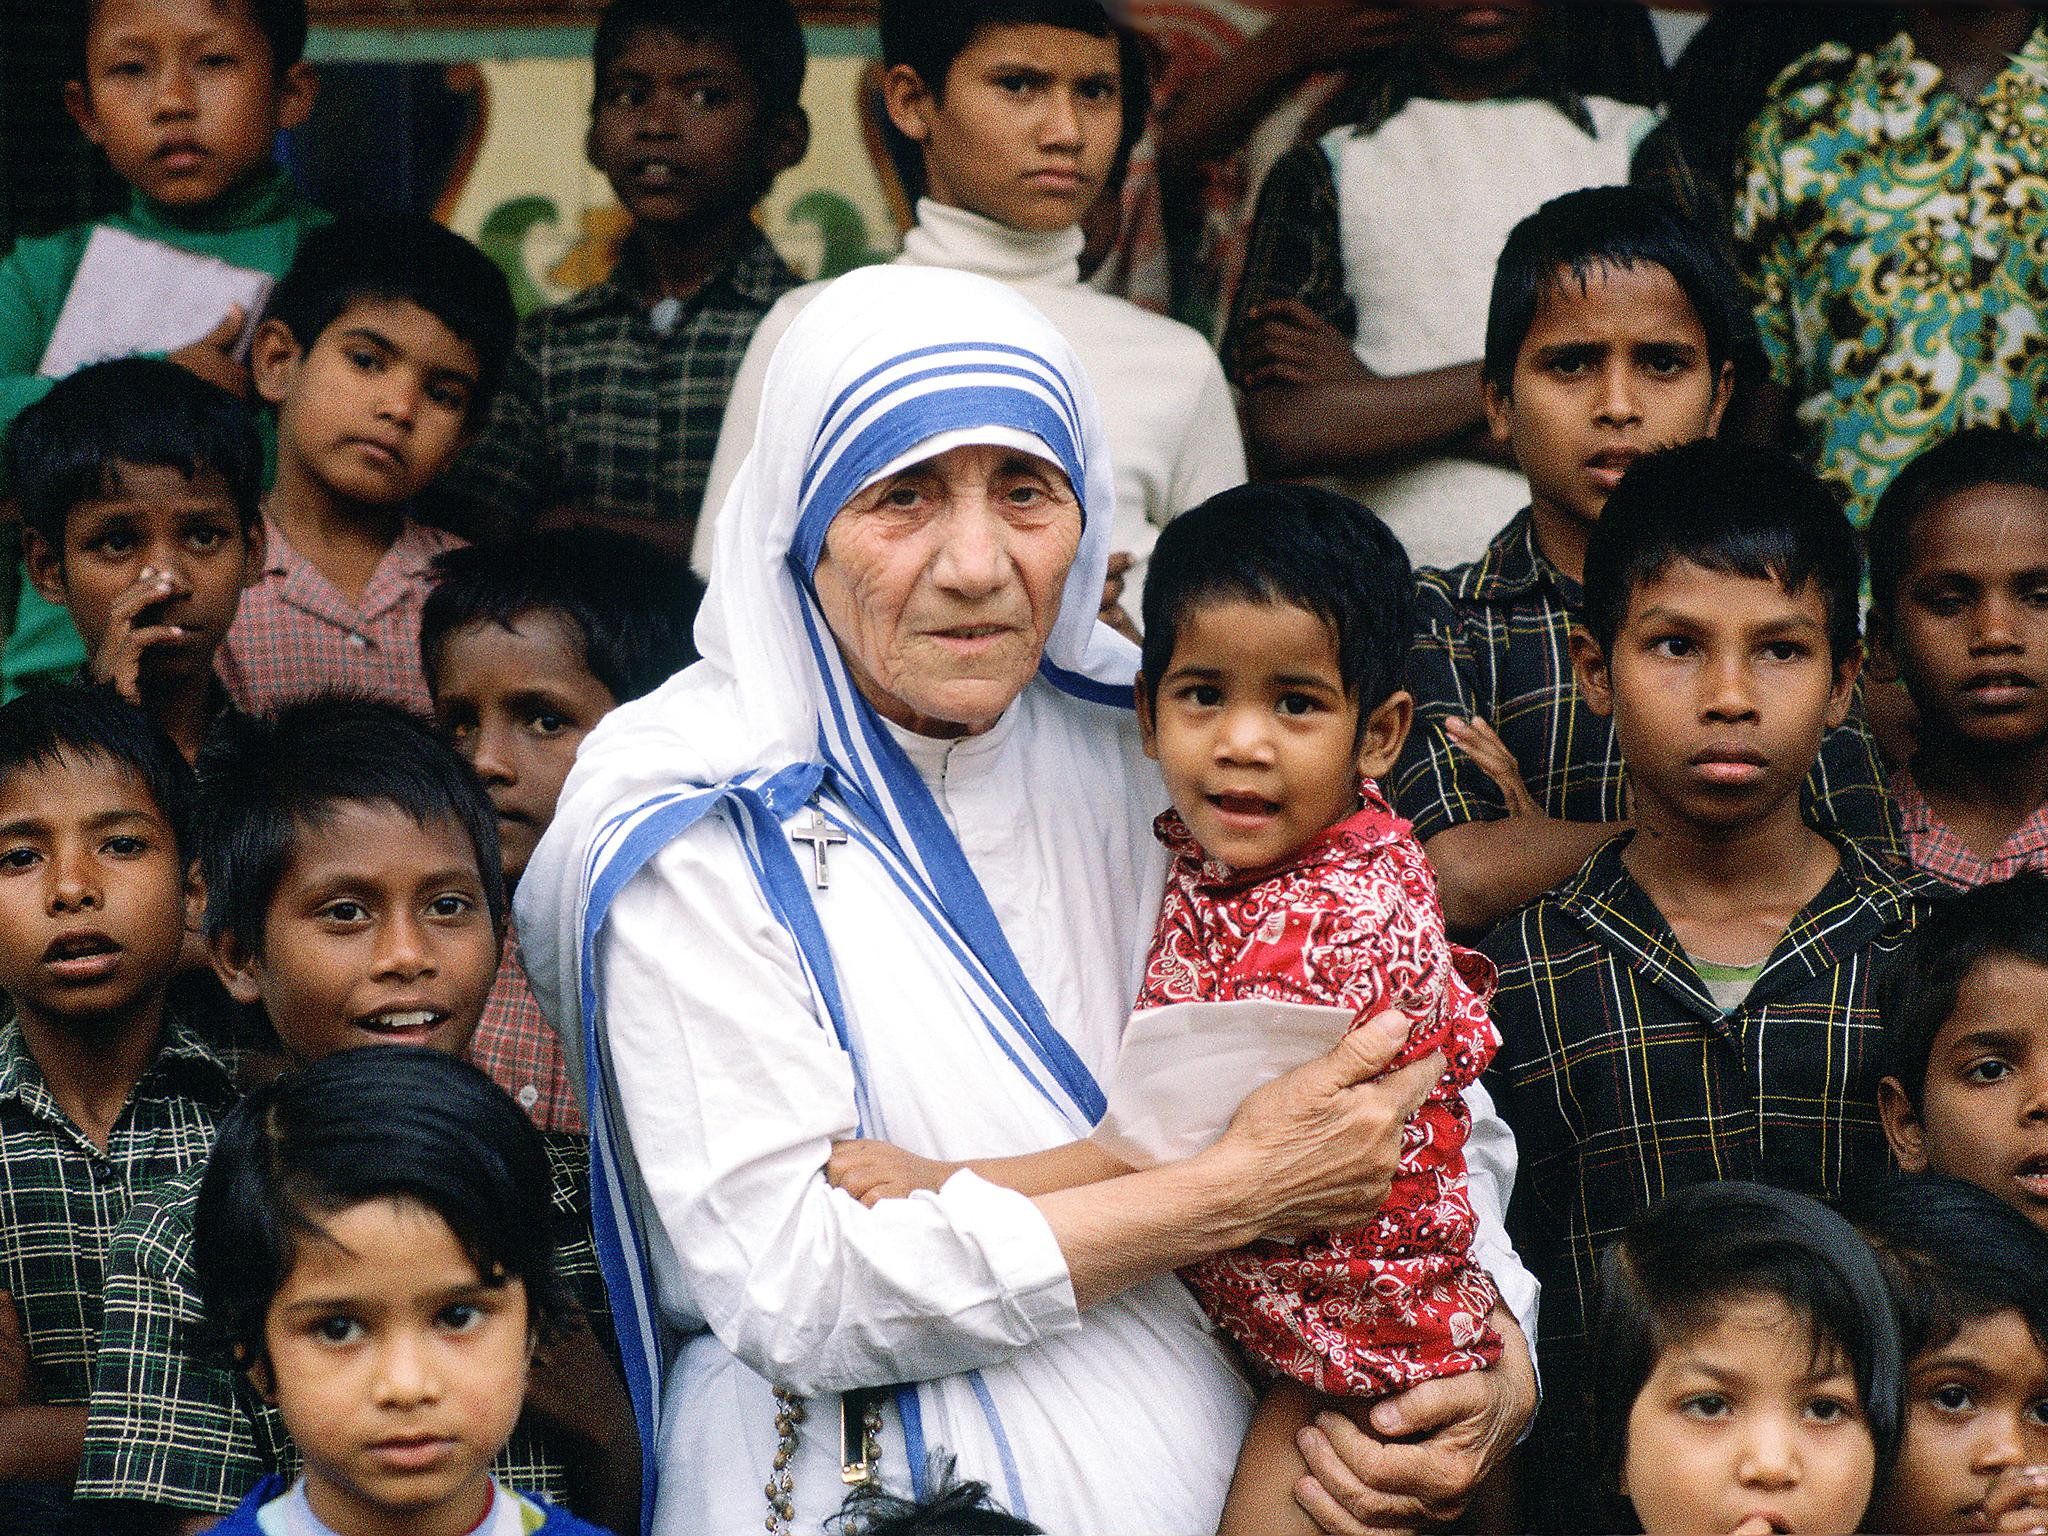 mother teresa wasn t a saintly person she was a shrewd operator mother teresa wasn t a saintly person she was a shrewd operator unpalatable views who knew how to build up a brand the independent